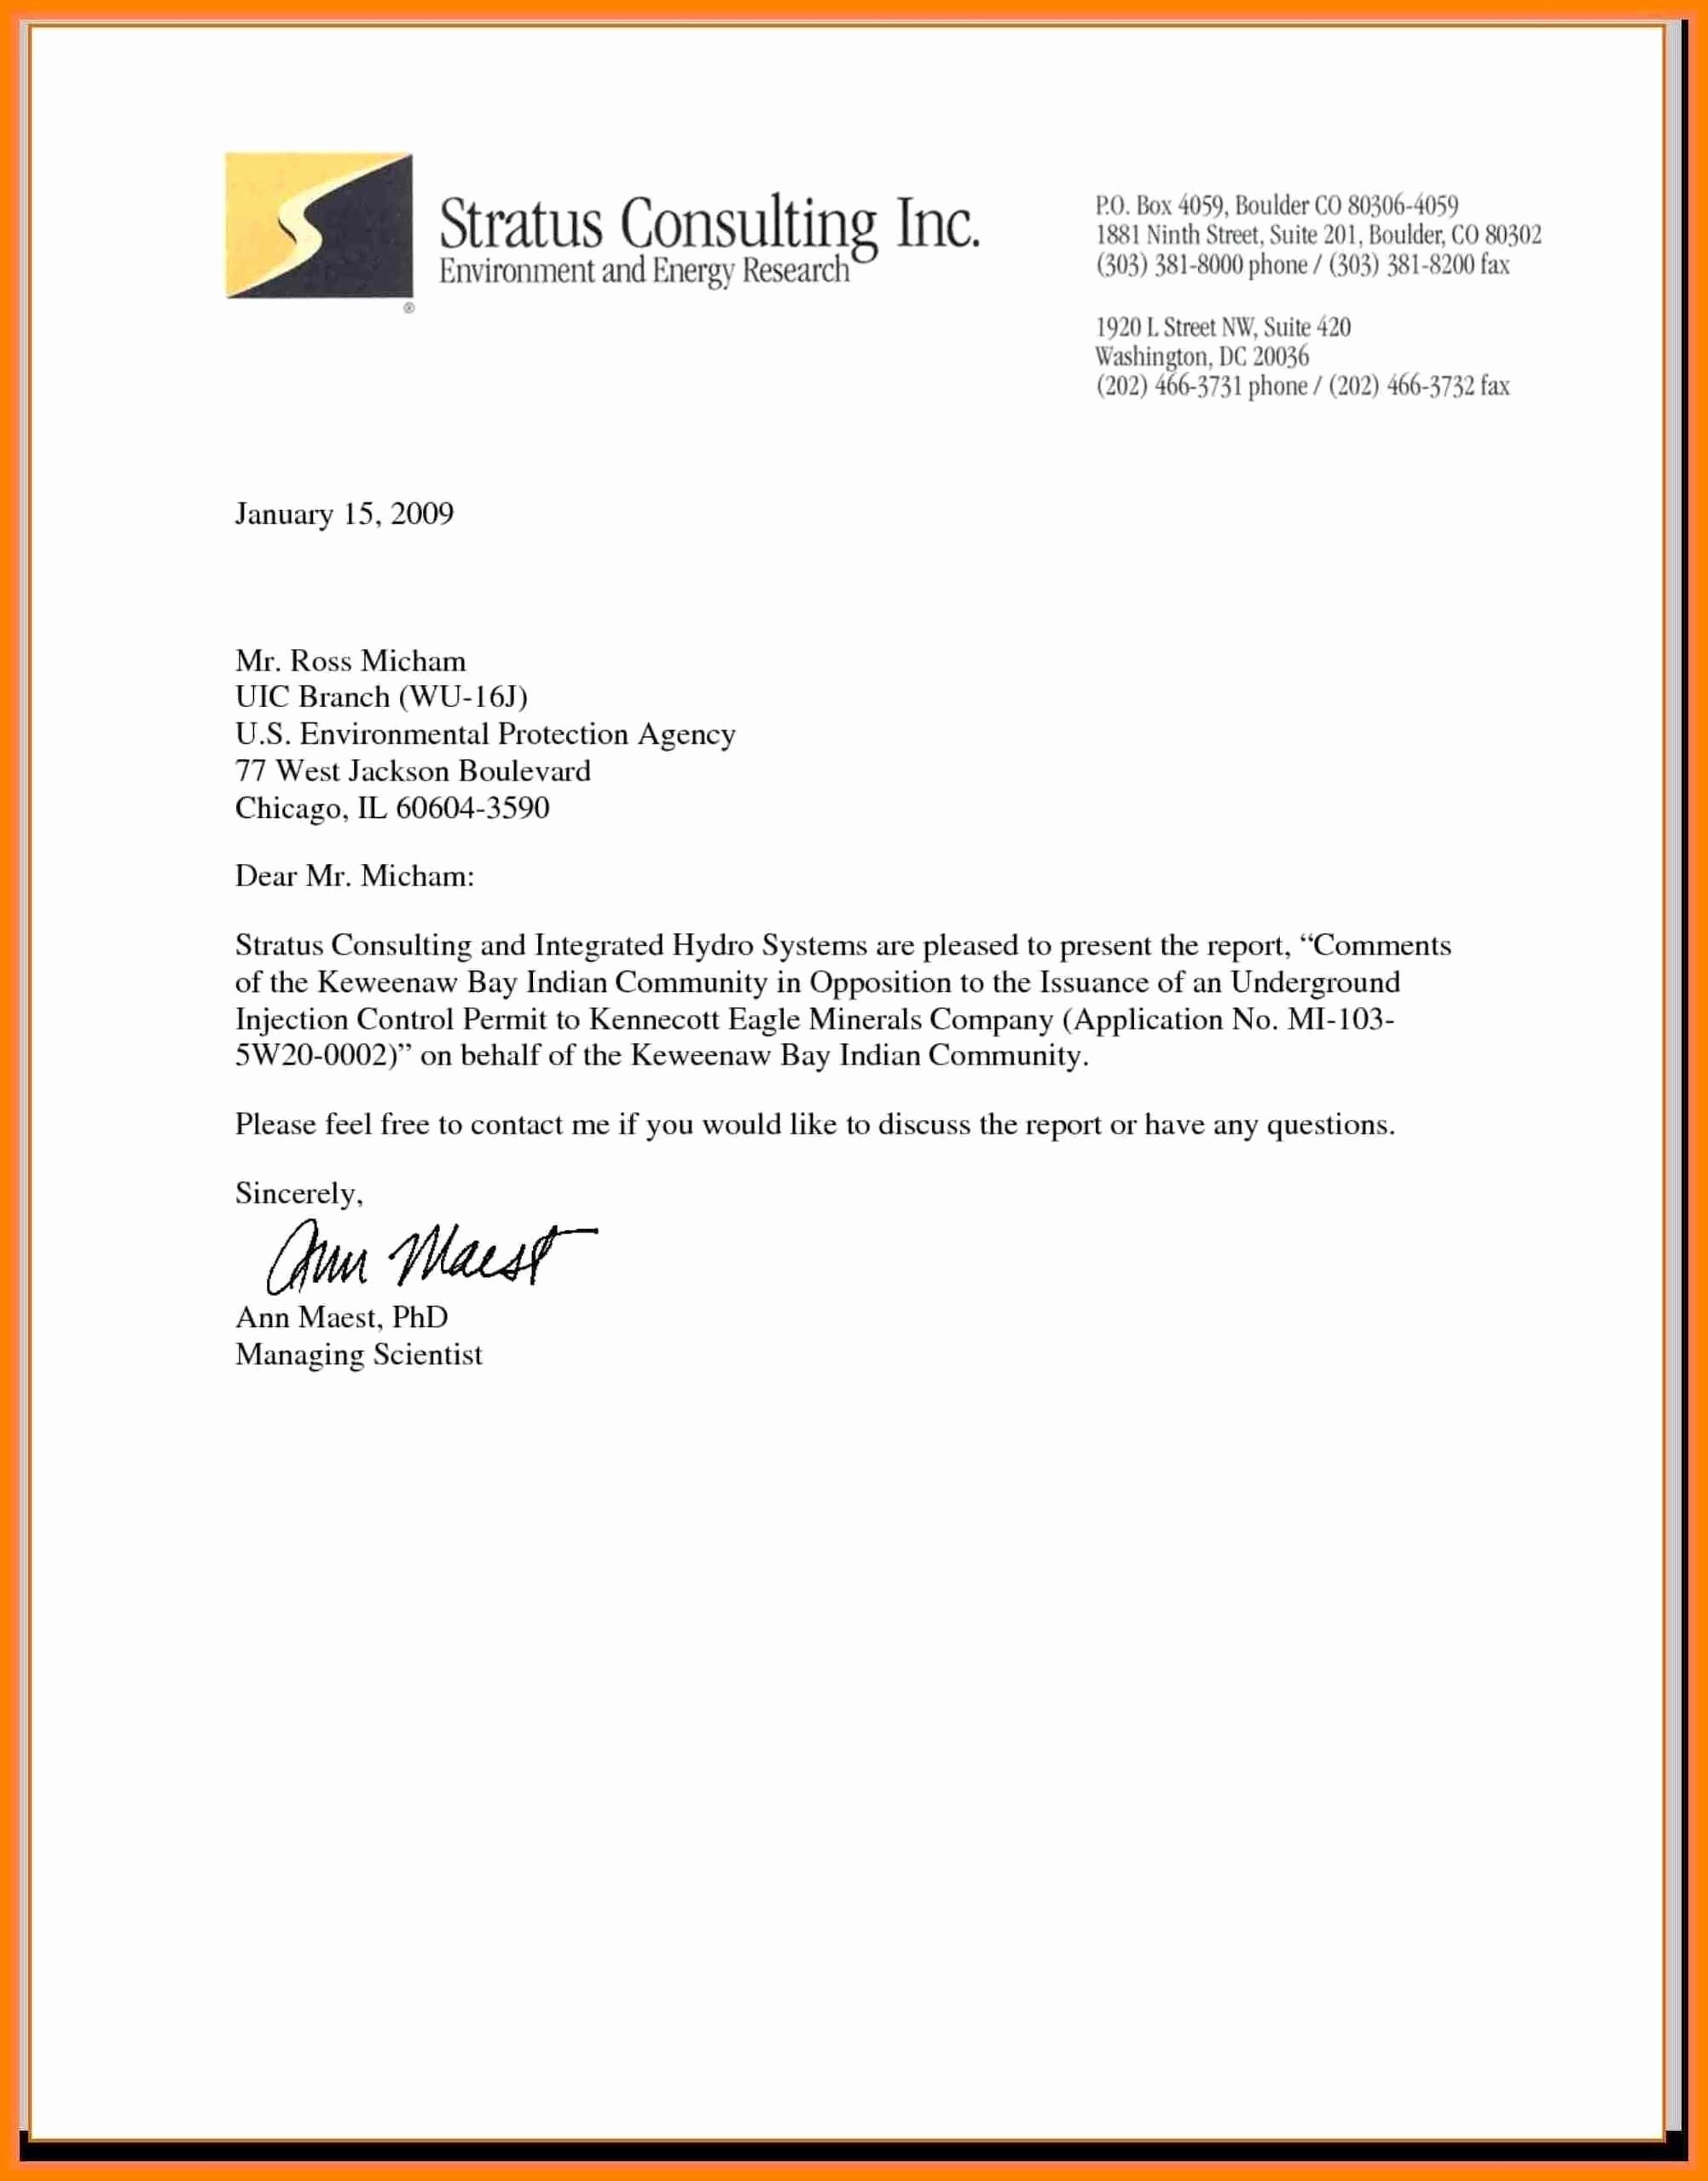 Microsoft Word Business Letter Templates New Business Letterhead Template New Business Letter format In